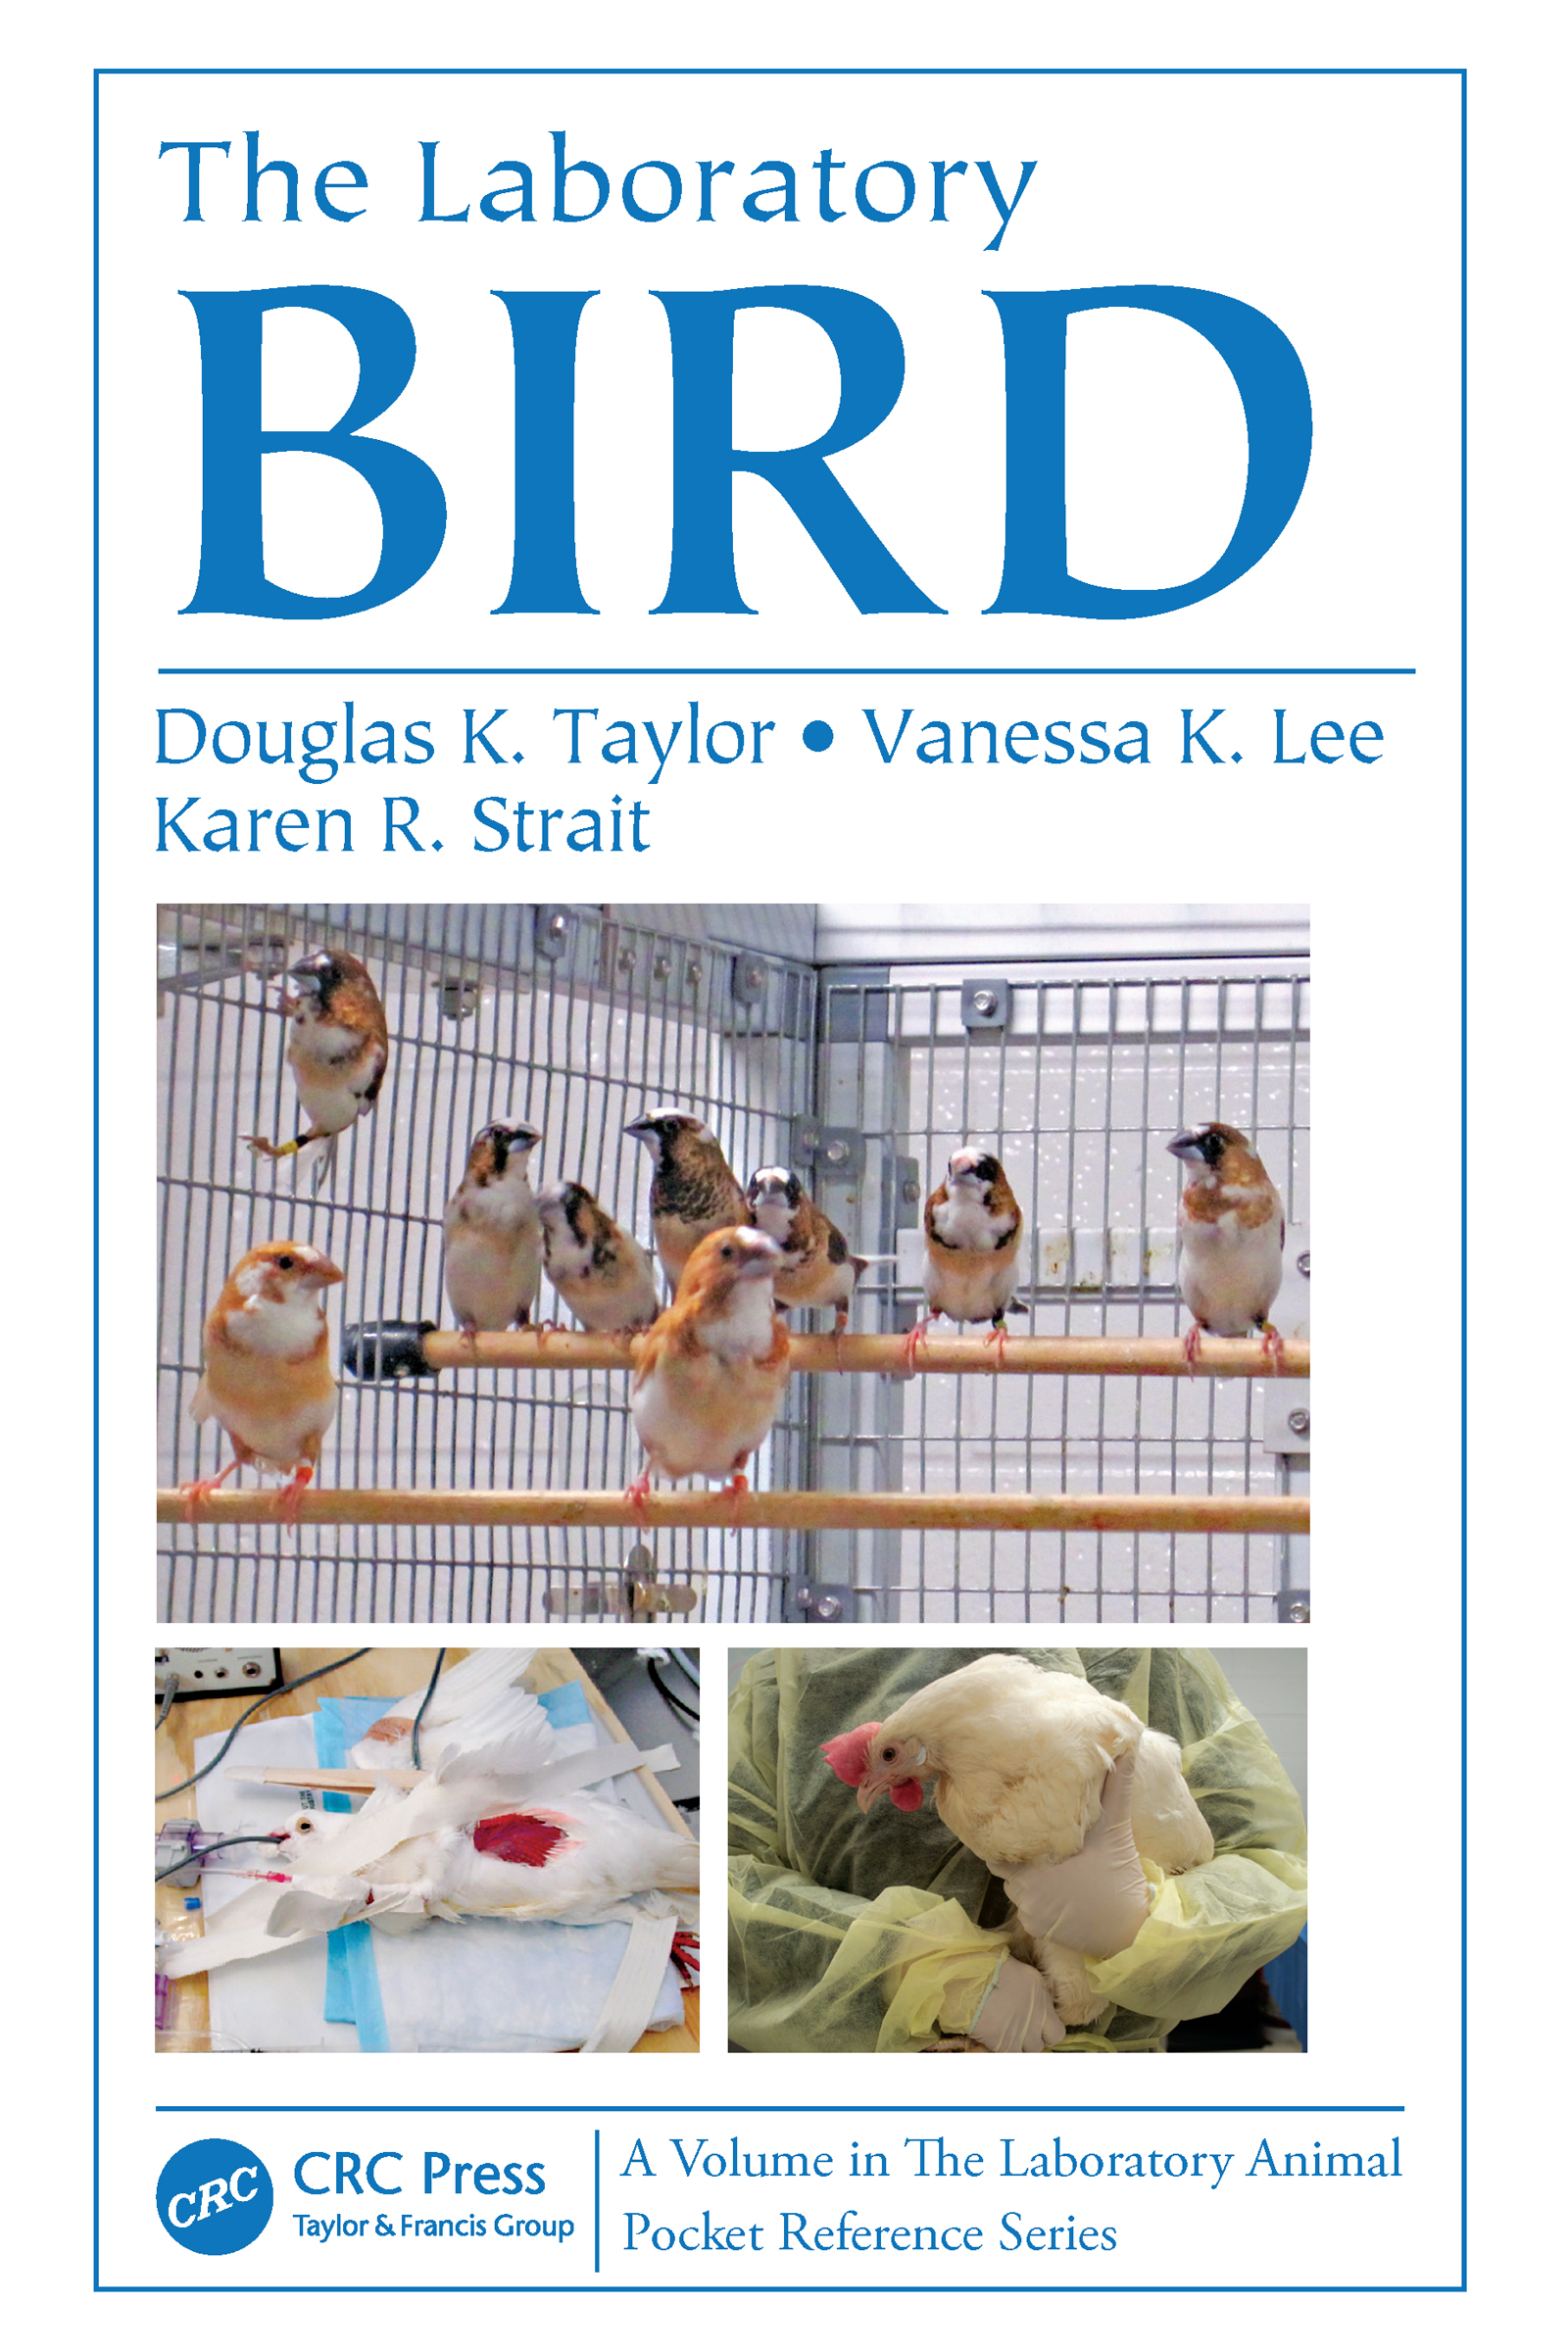 The Laboratory Bird (Paperback) book cover